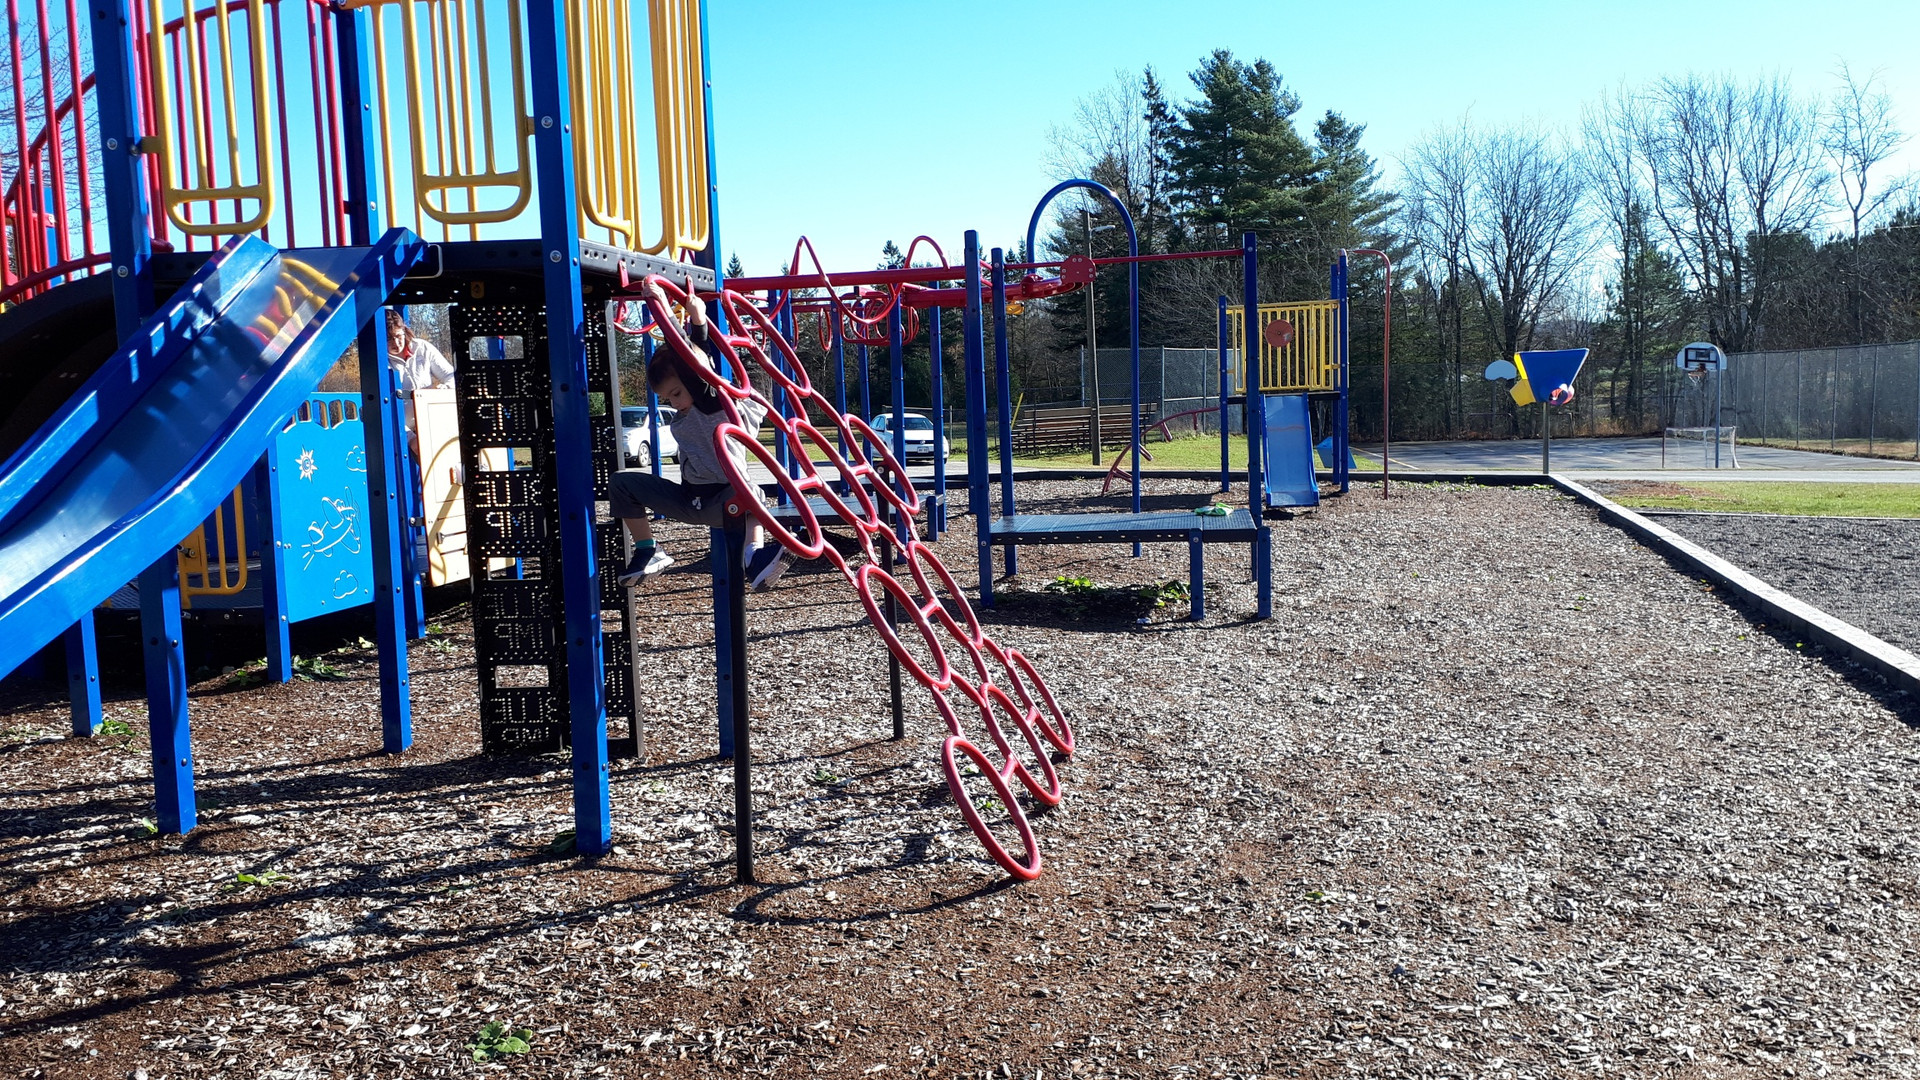 River Road Hub community playground